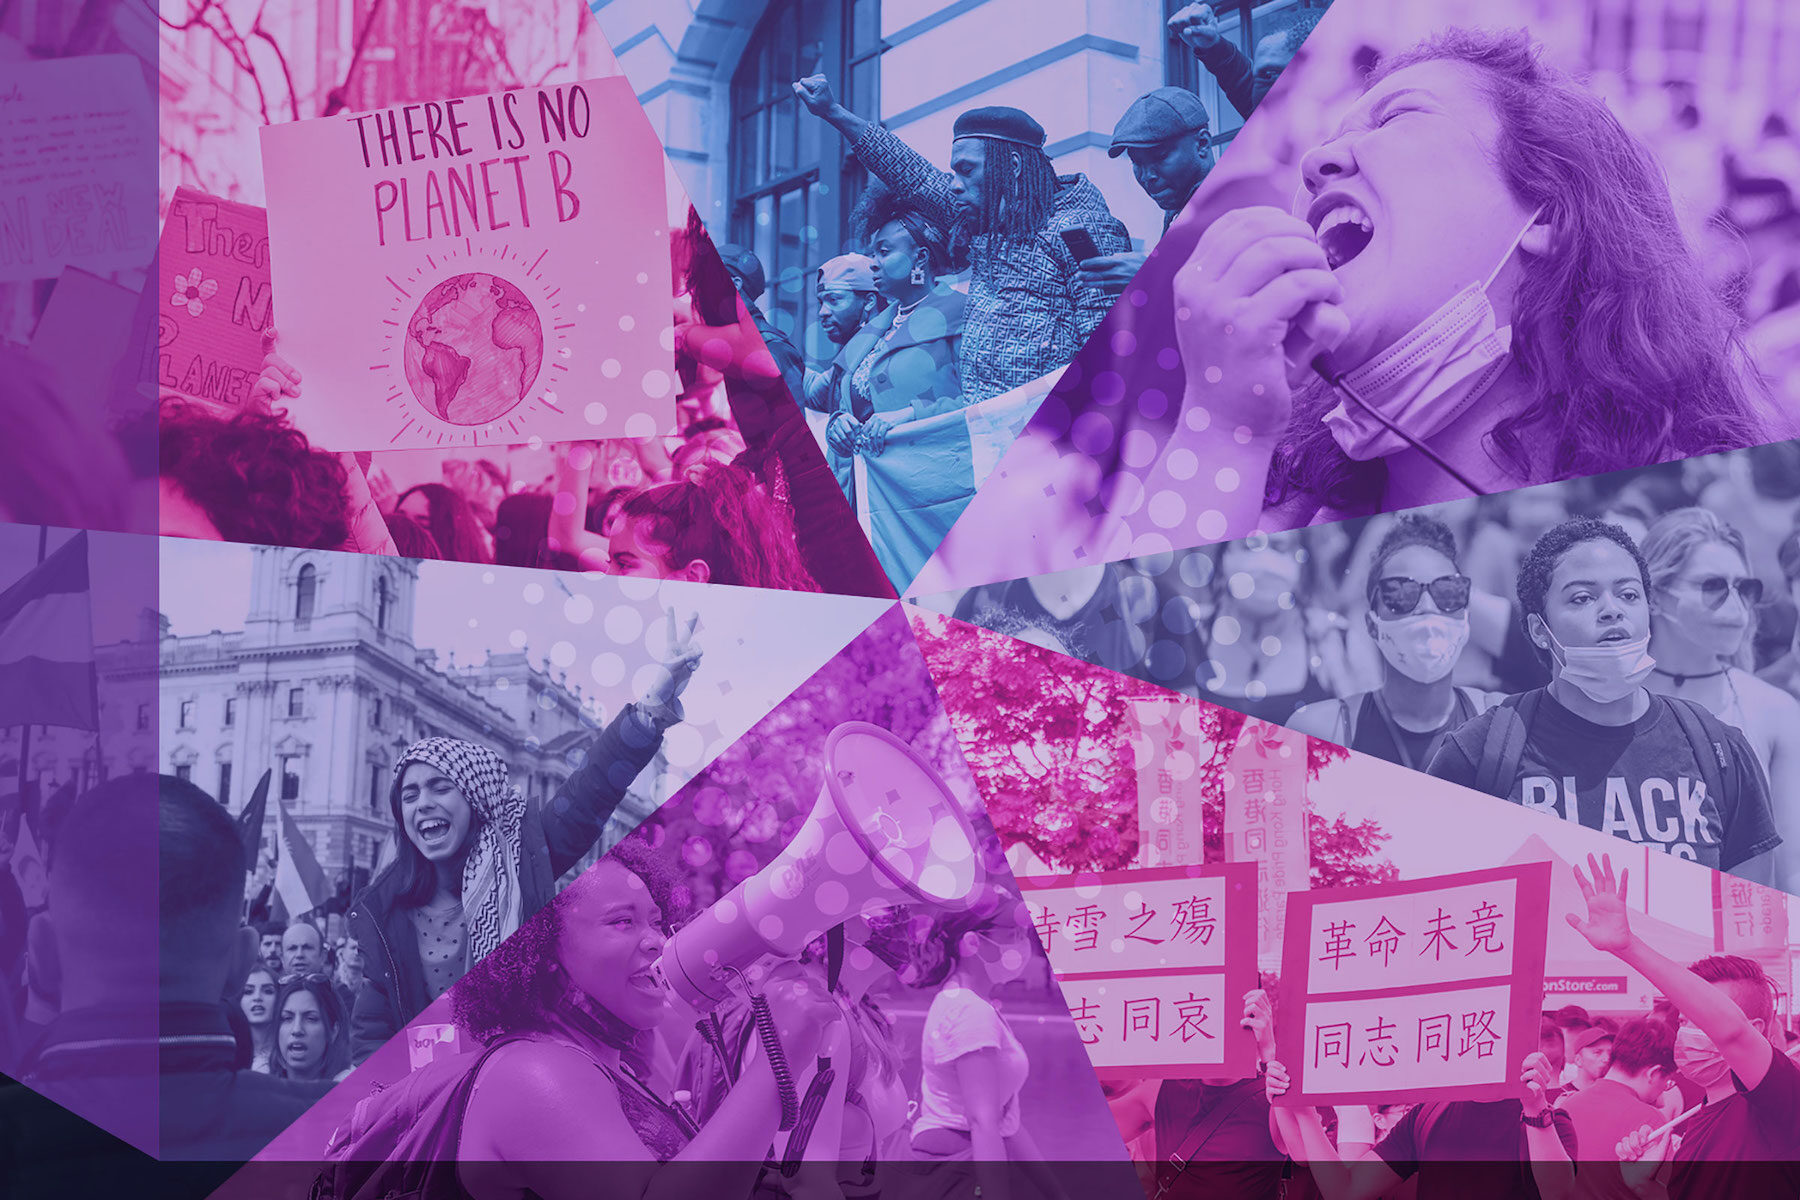 Polyvocality represented by a collage of images showing people speaking out and making their voice heard.